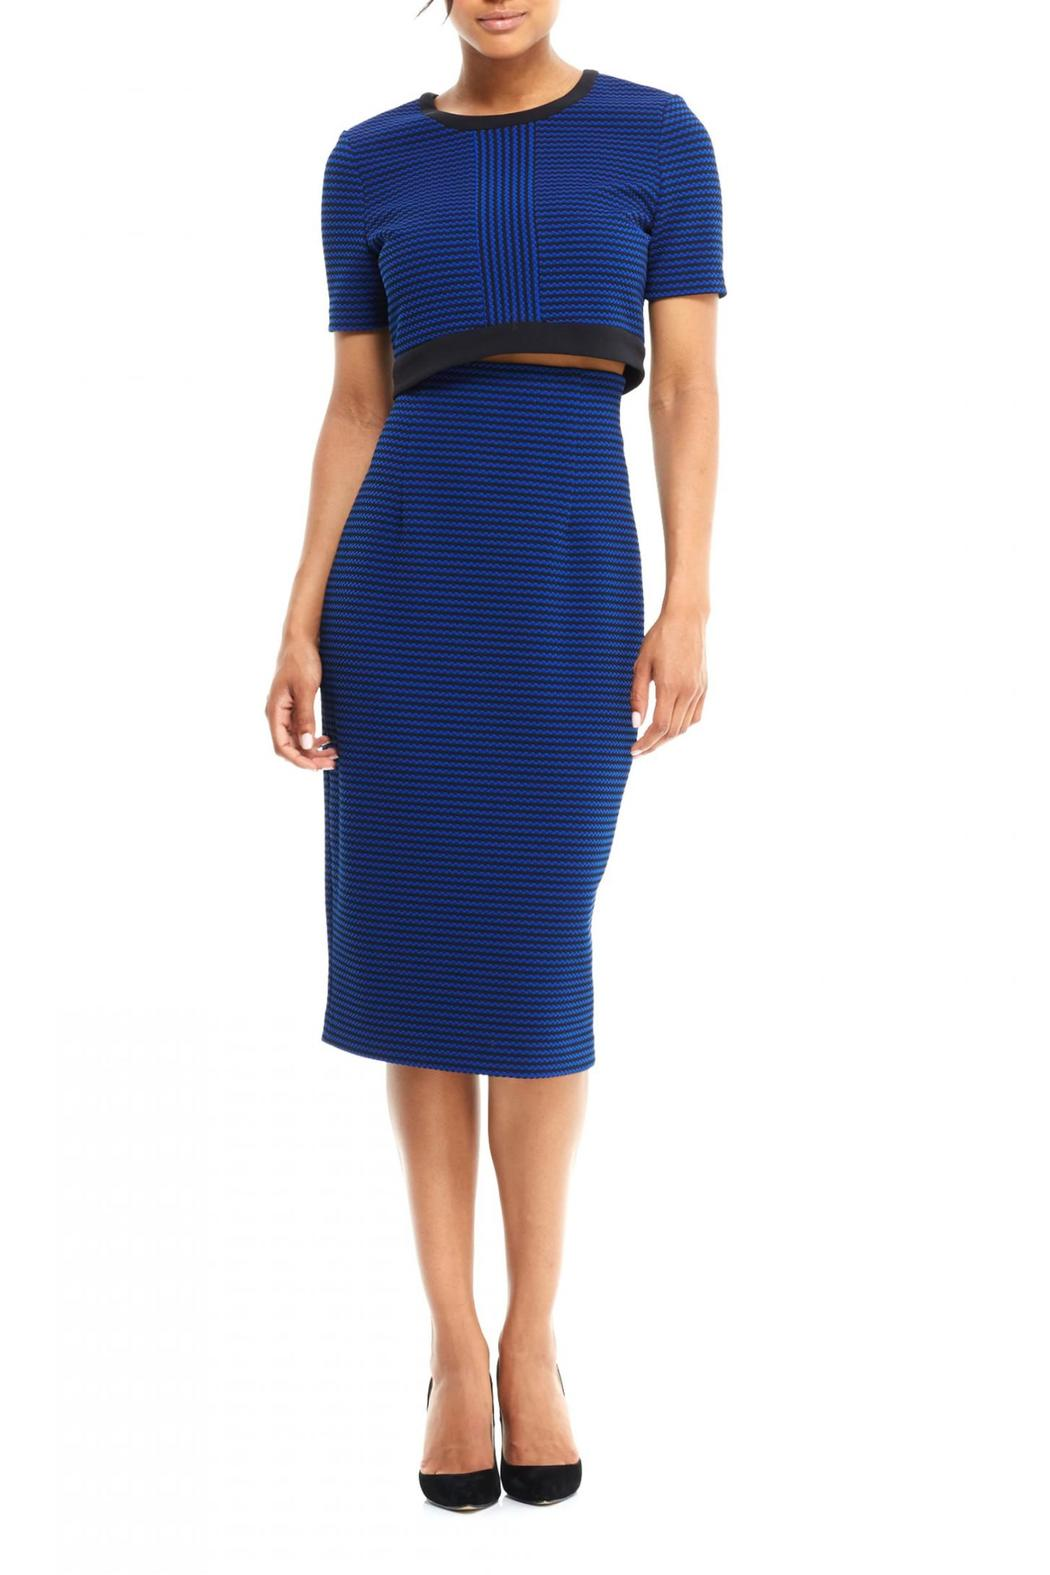 Maggy London Two Piece Dress - Main Image